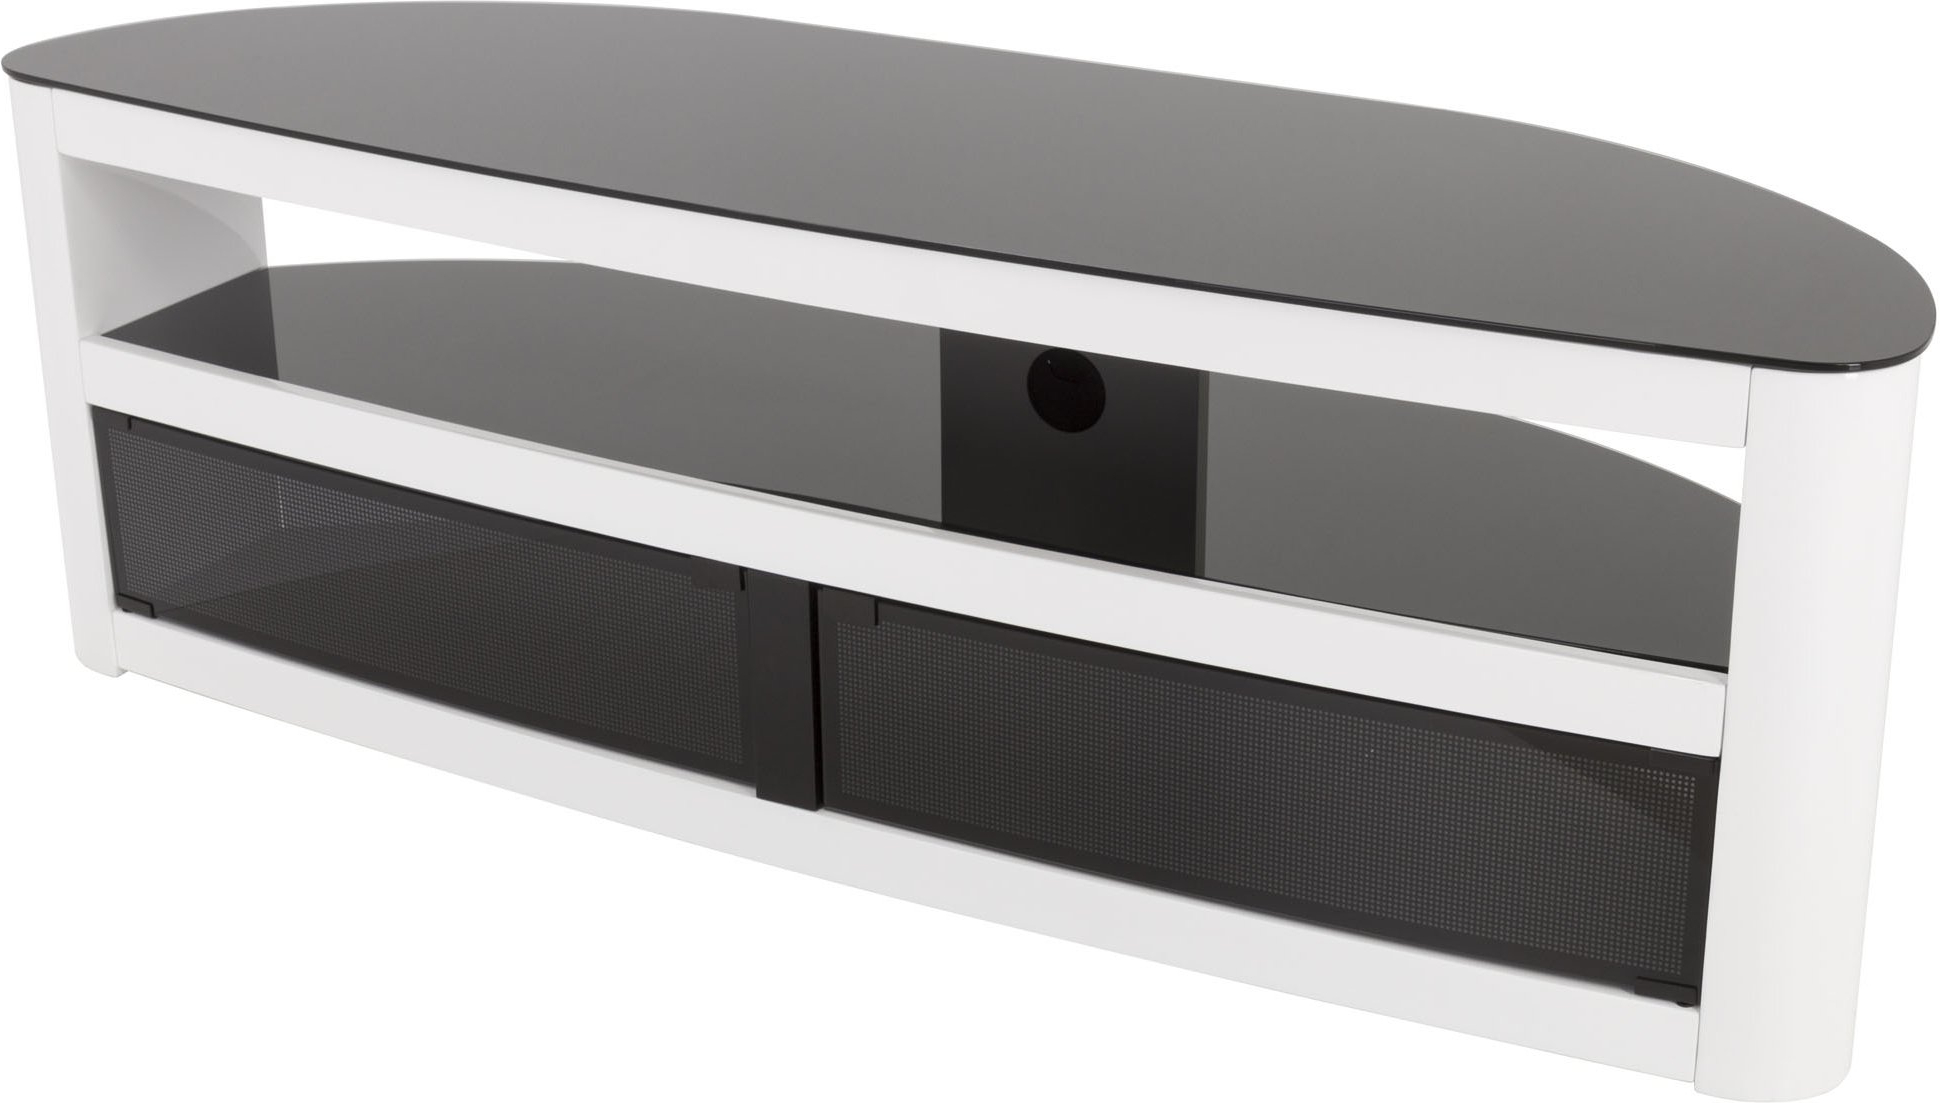 Avf Fs1500Burgw Tv Stands Within Latest White High Gloss Tv Stands (View 3 of 20)